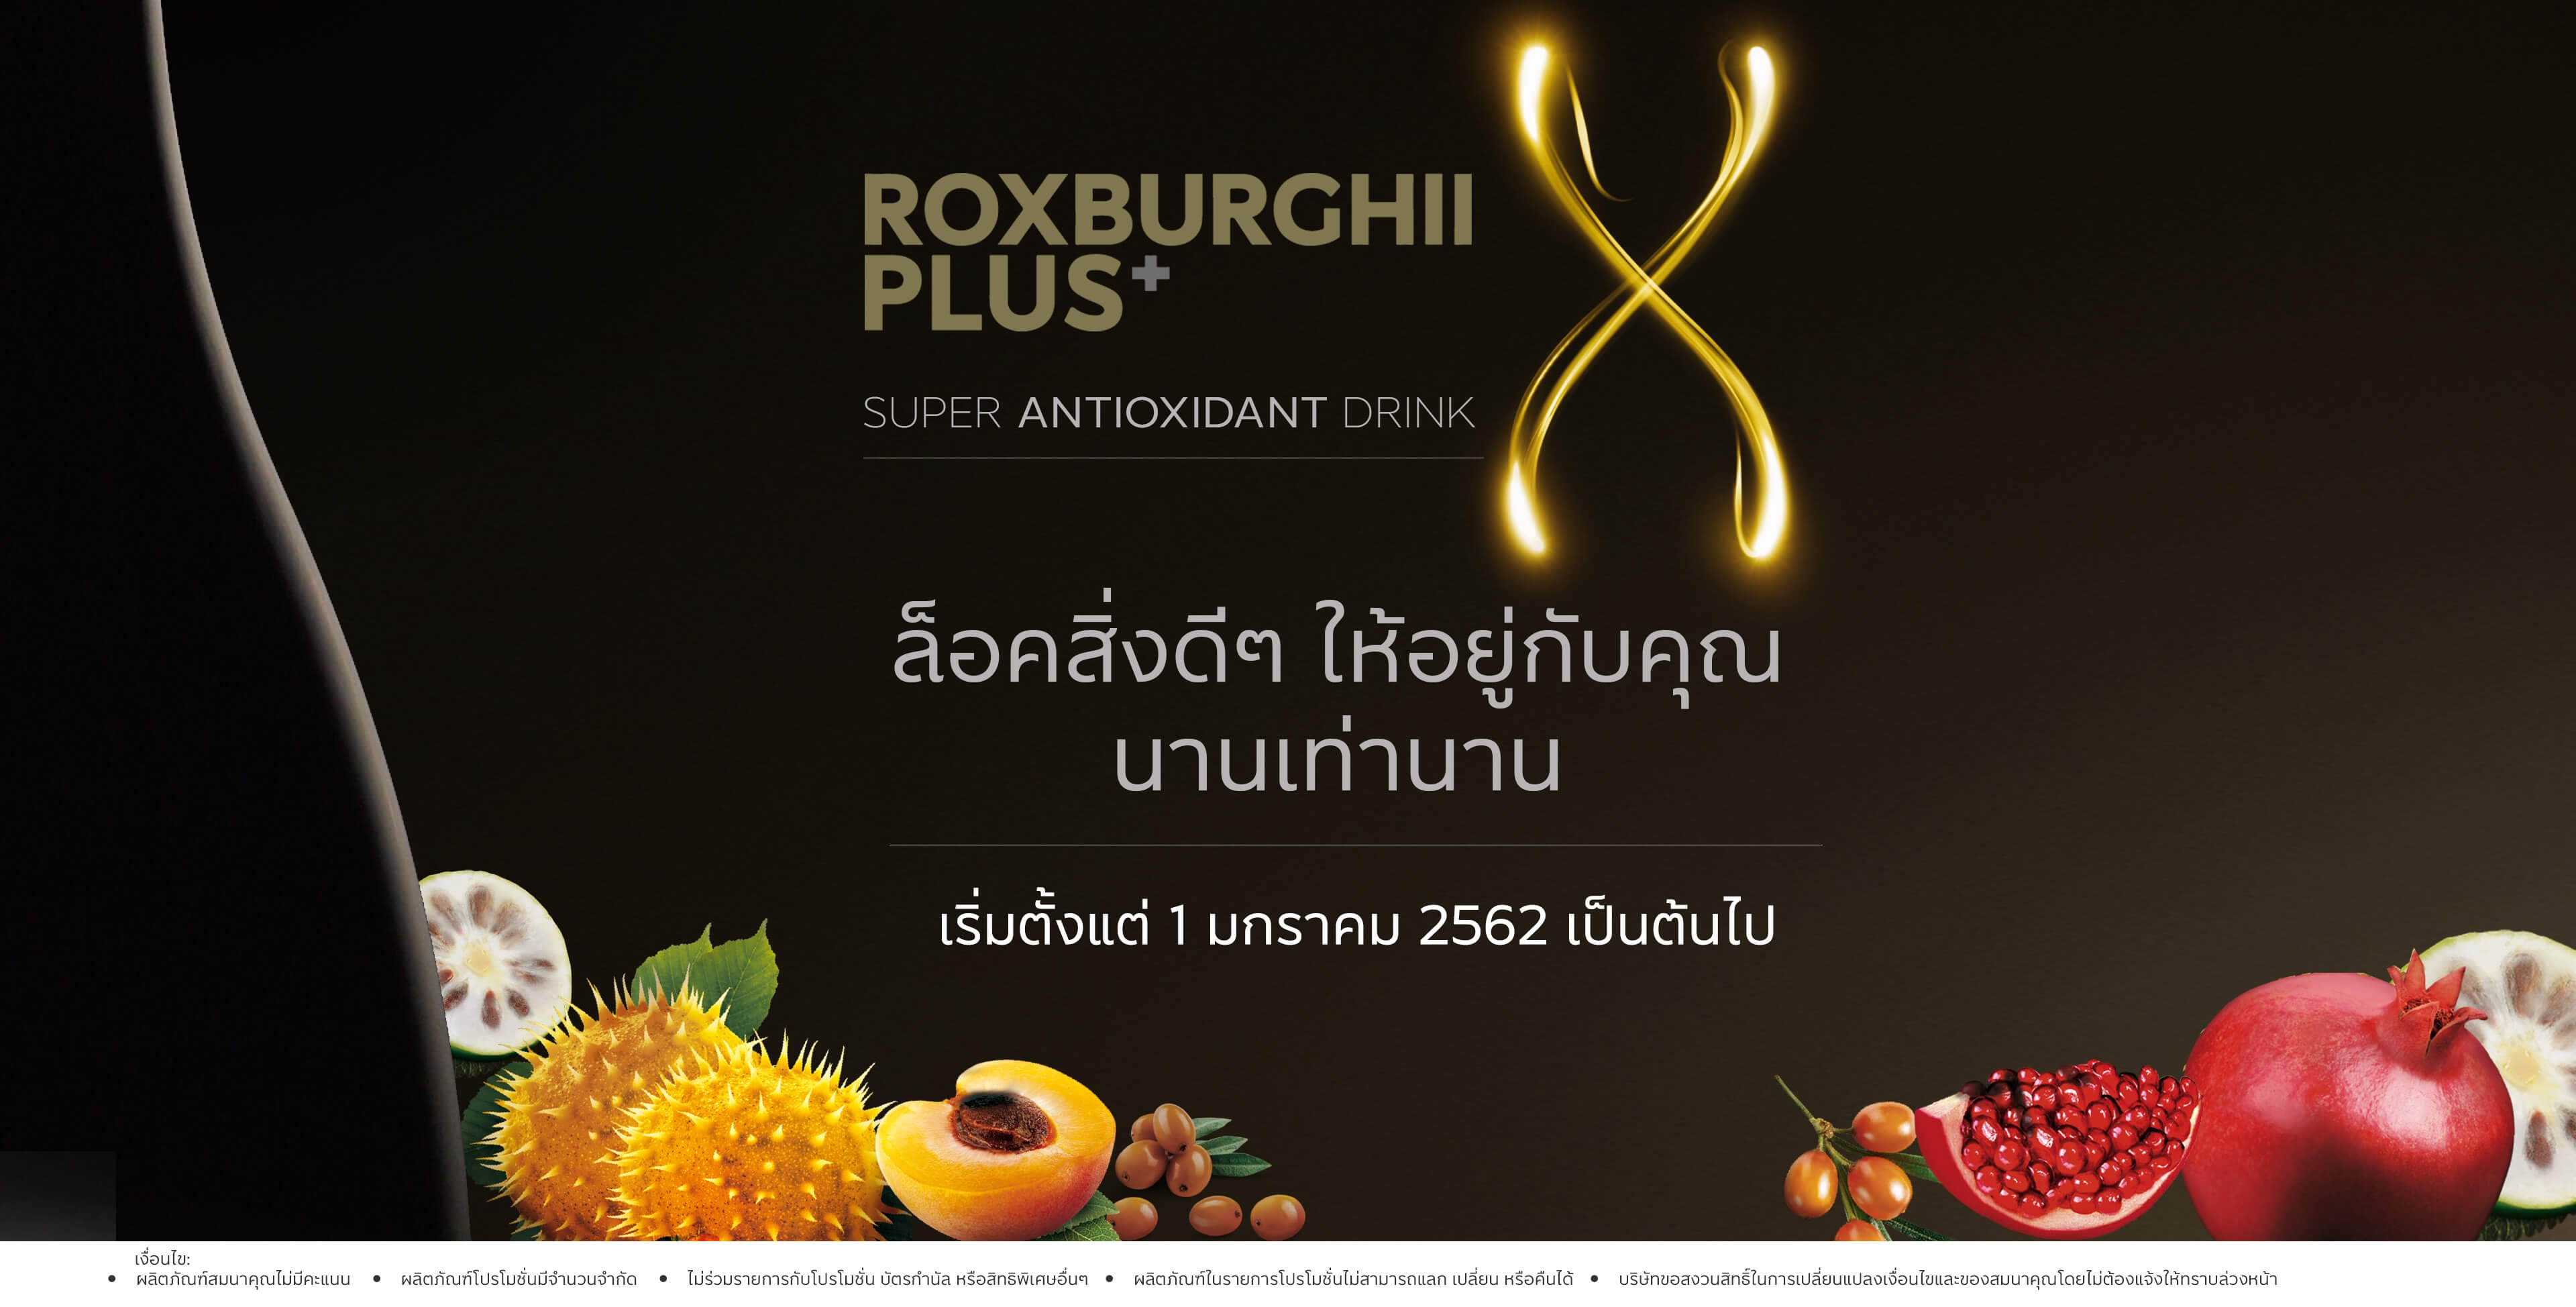 Newly launch beyonde Roxburghii Plus